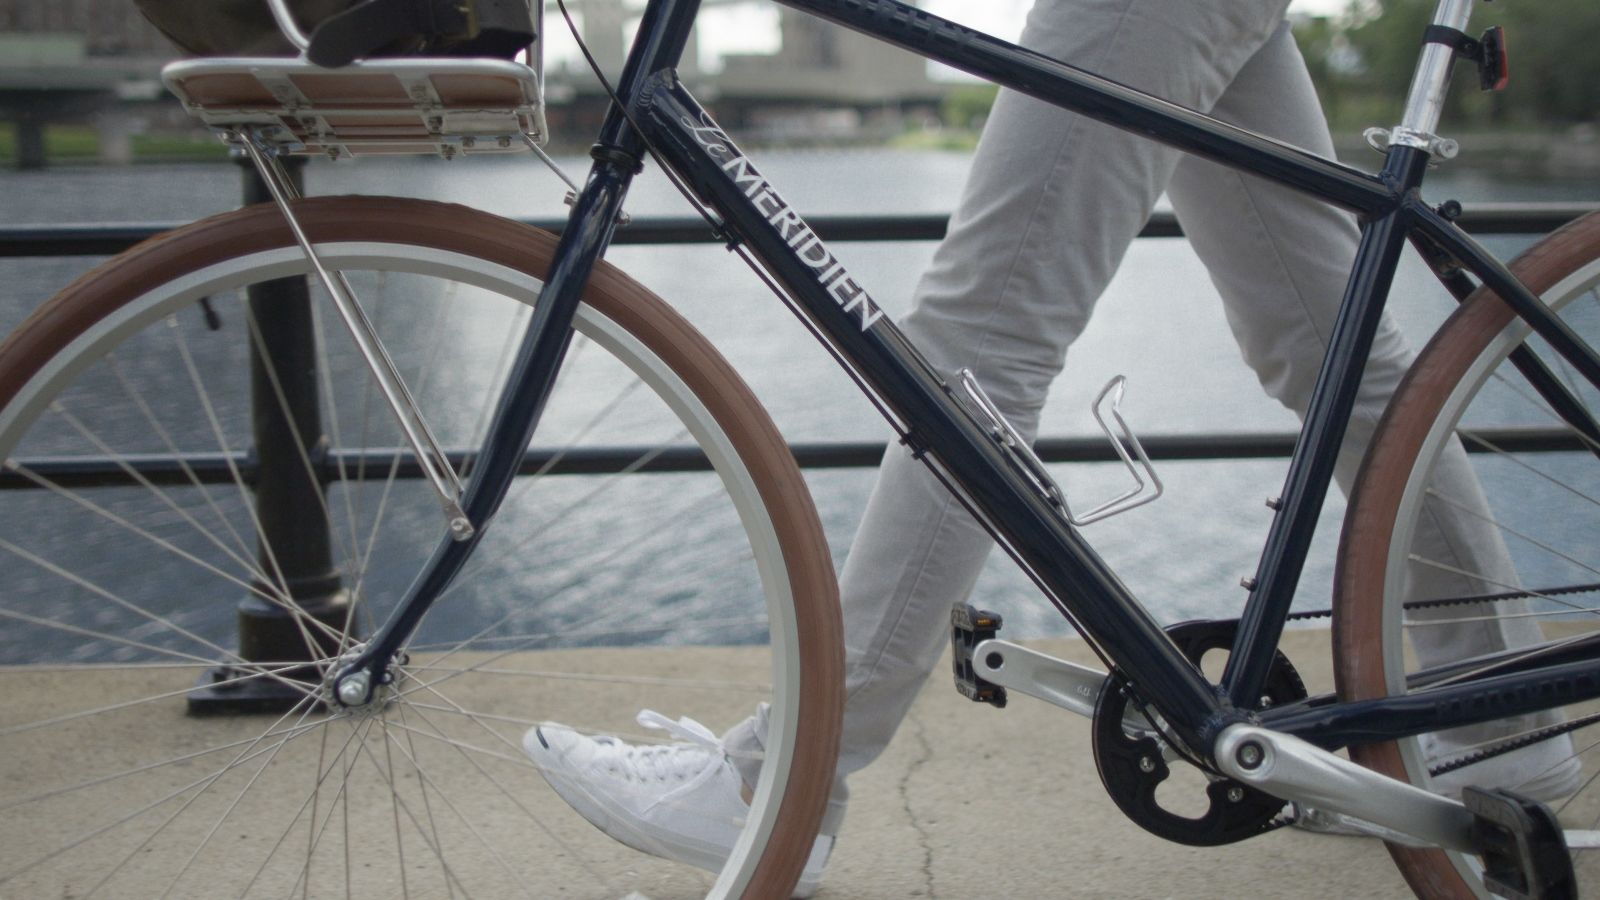 Unlock Art - Priority Bicycles